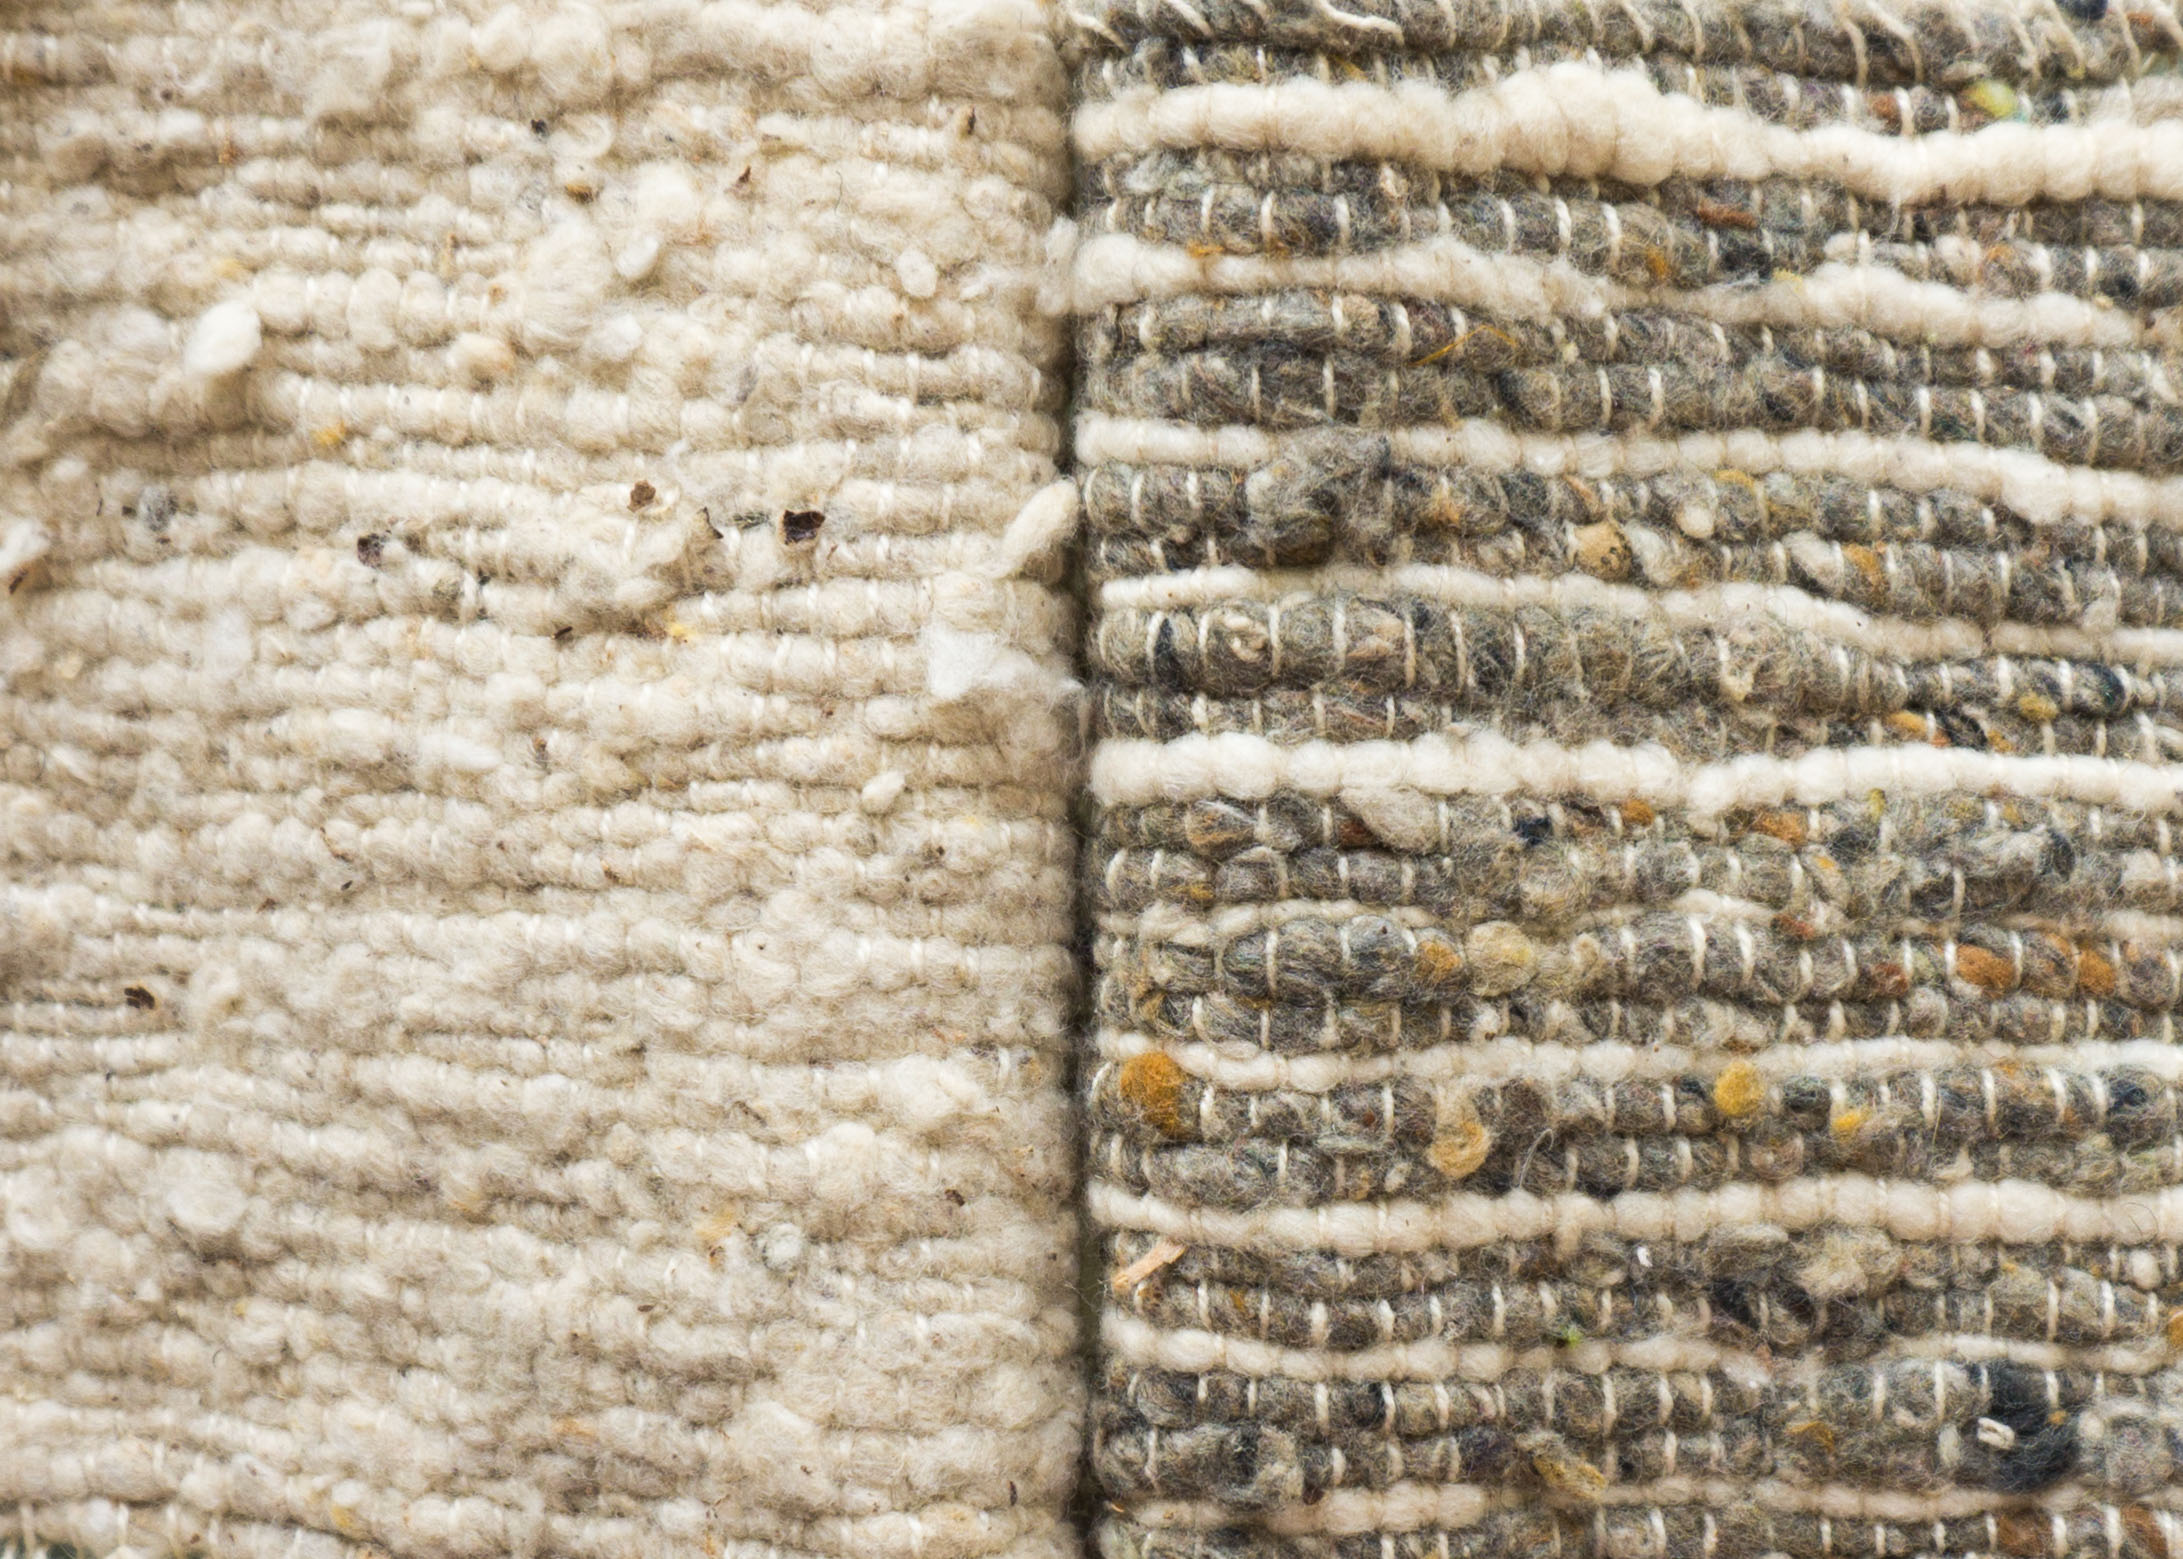 Natural wool is costly, so synthetics like acrylic and polyester are used to bulk up hand woven looks like this.